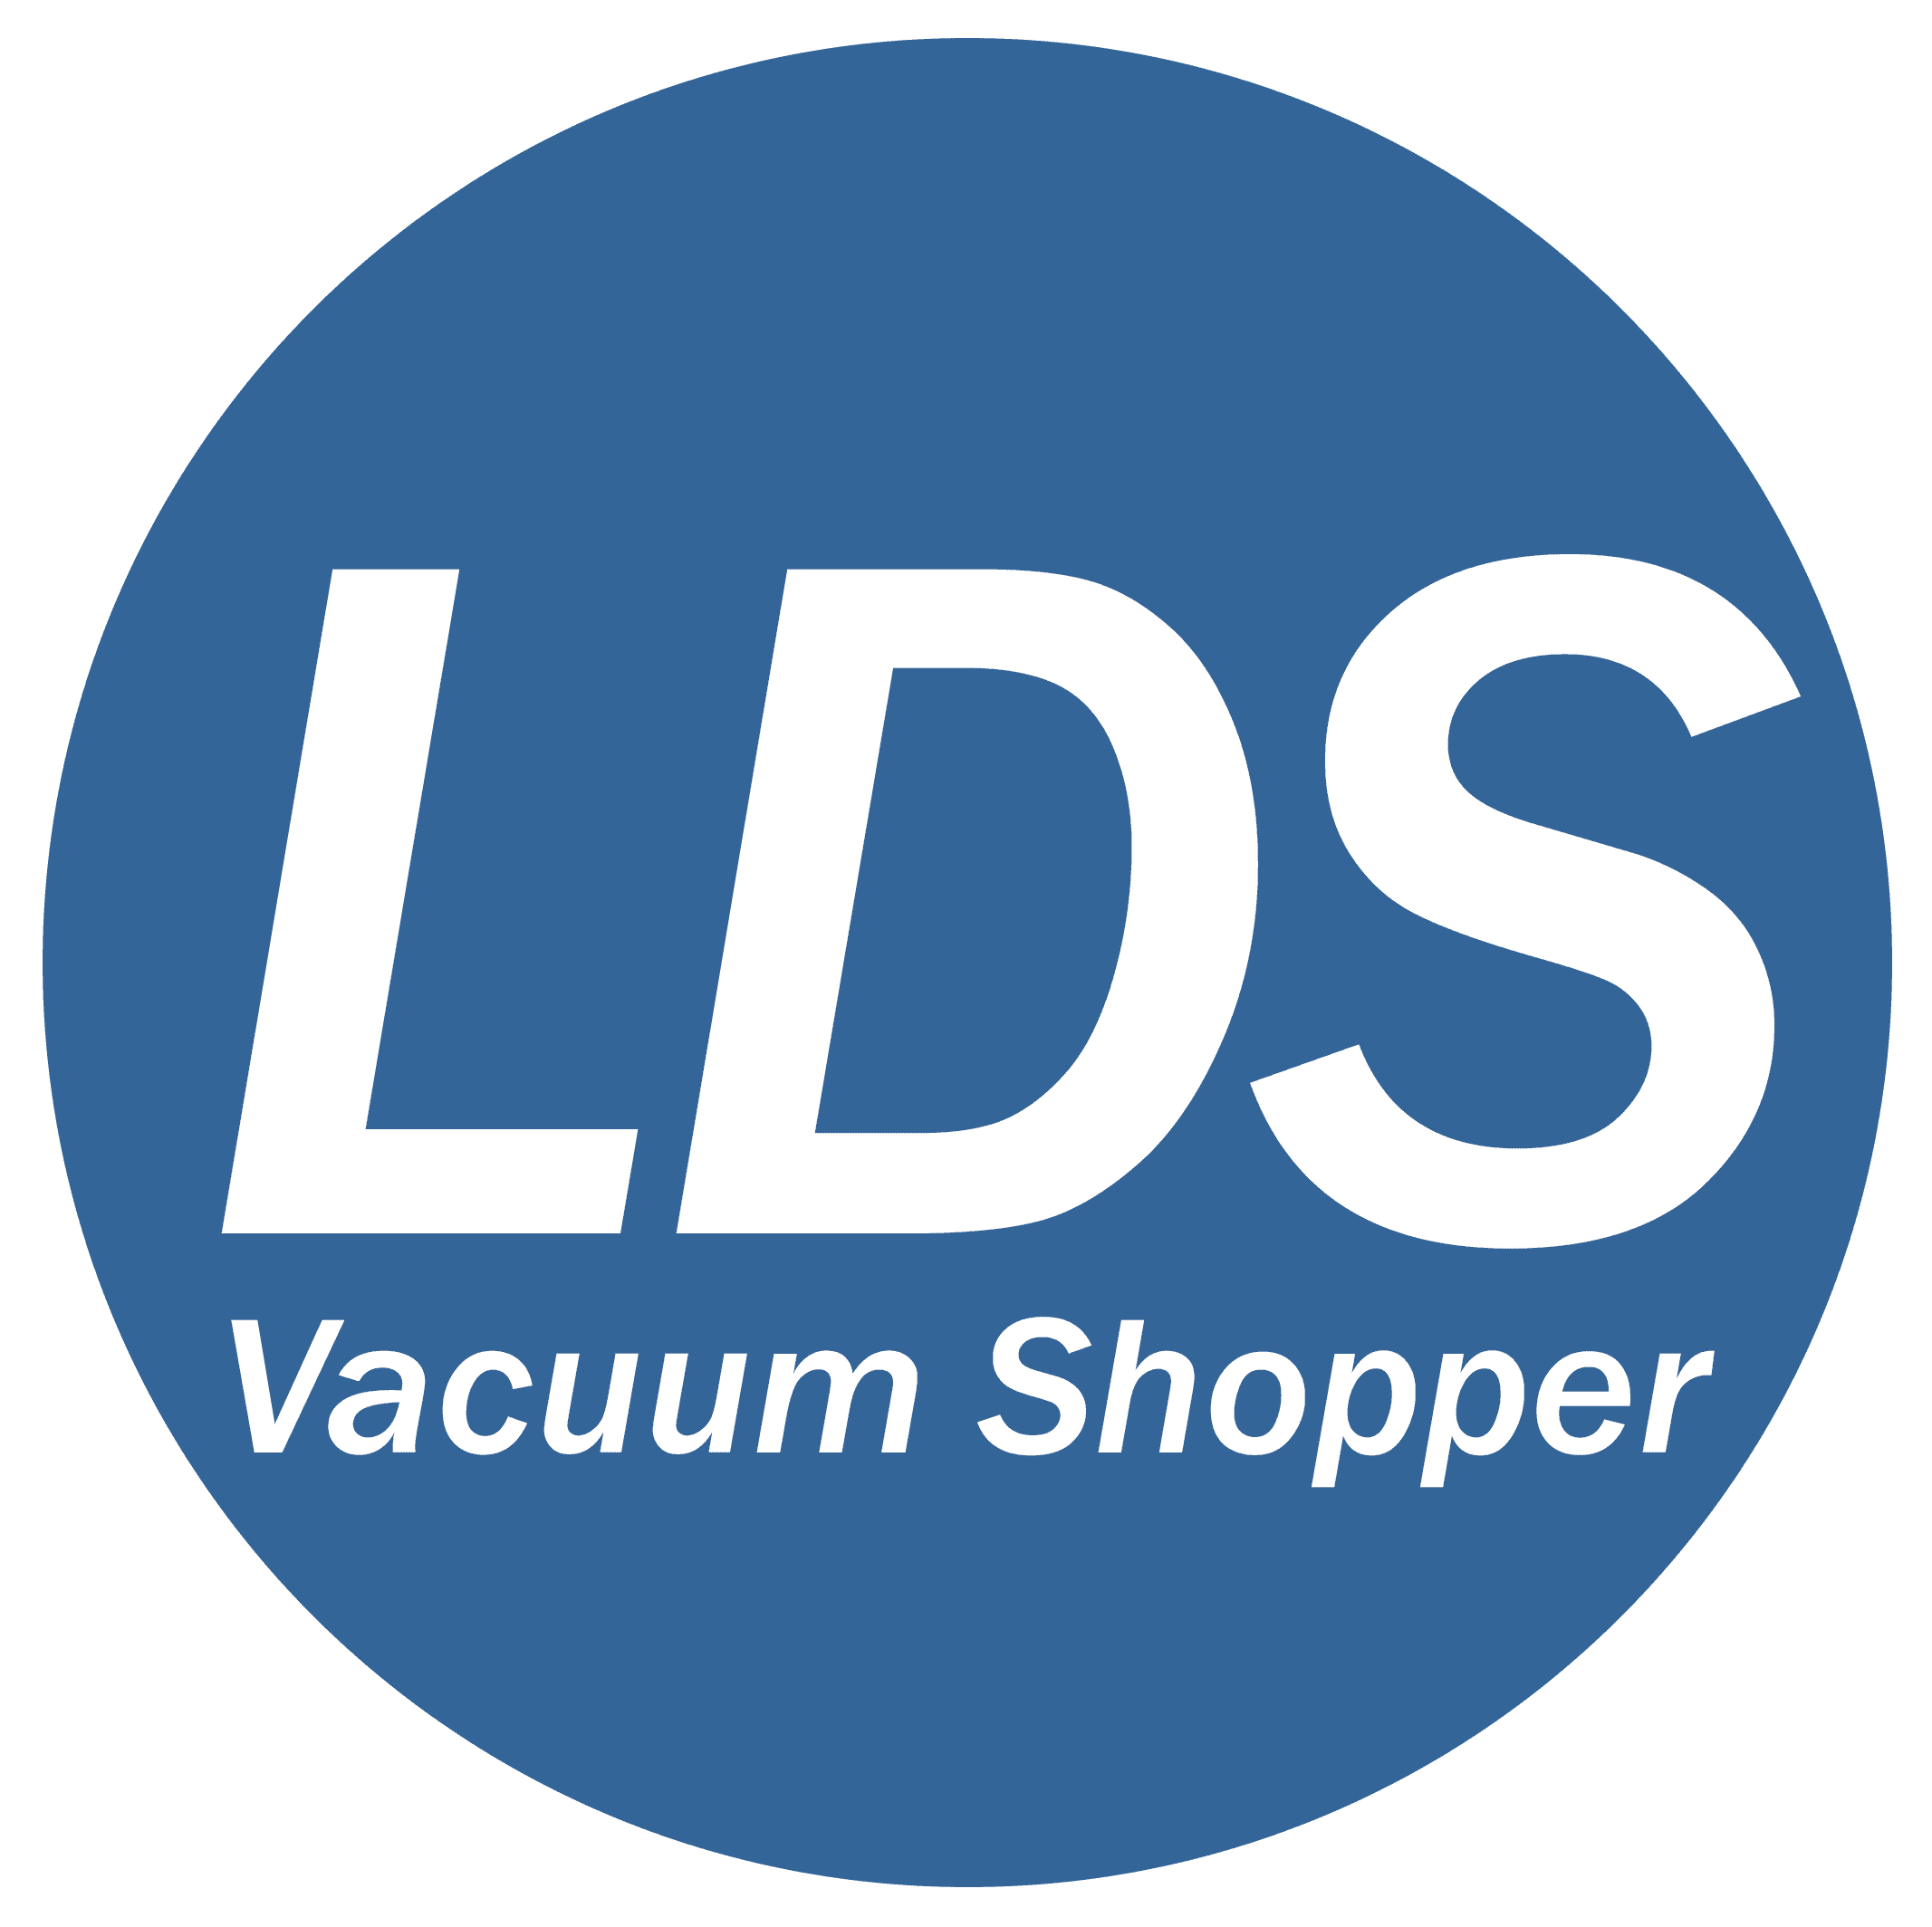 Go to the Homepage section on the LDS Vacuum Shopper